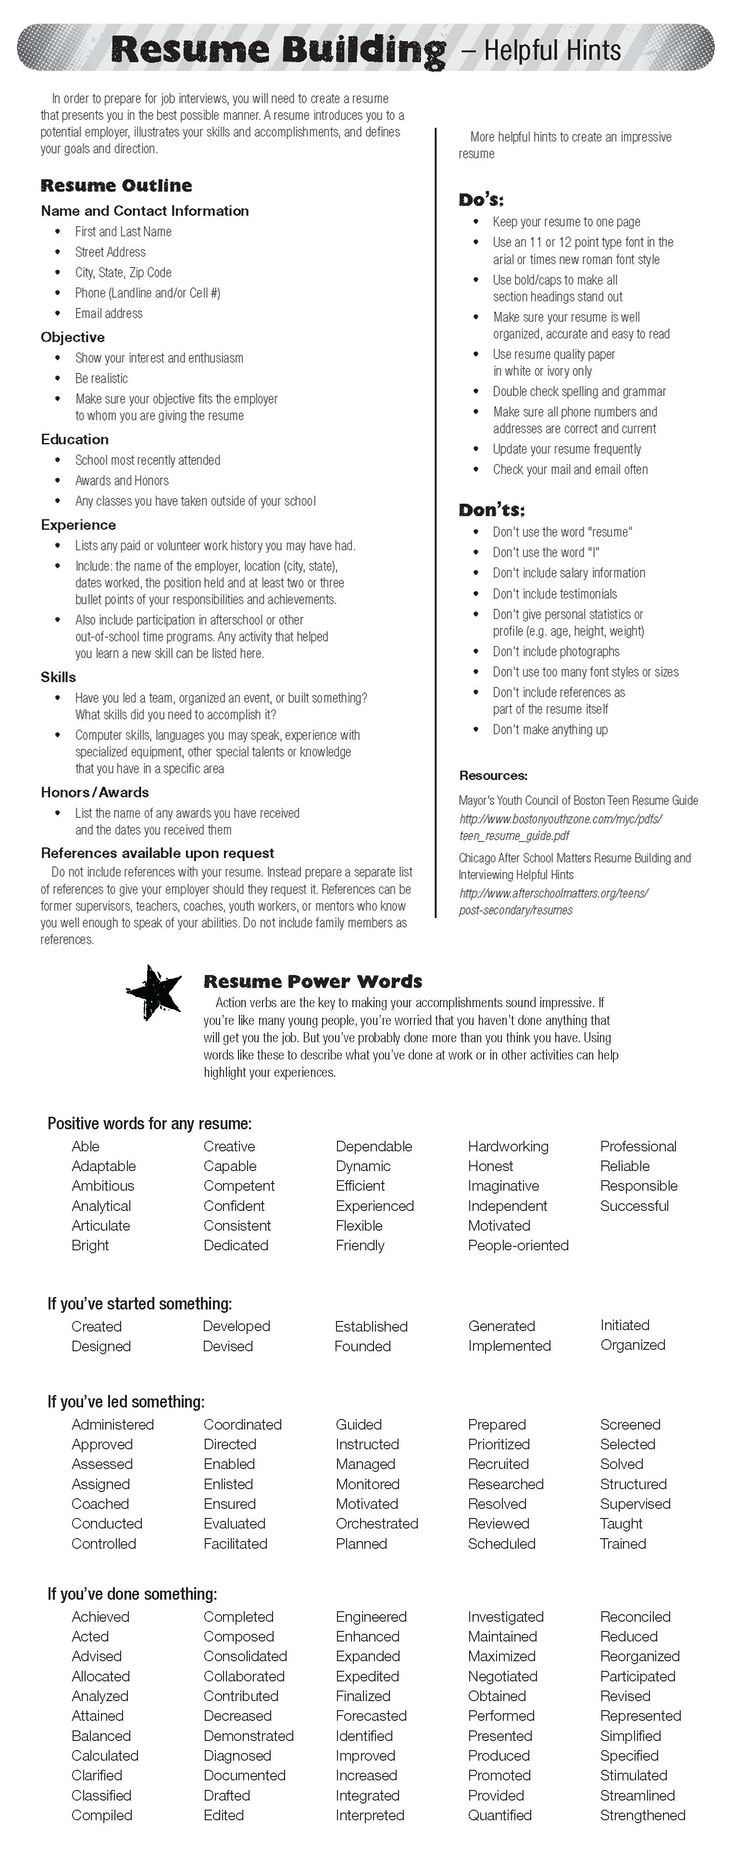 Opposenewapstandardsus  Inspiring  Ideas About Resume On Pinterest  Cv Format Resume Cv And  With Goodlooking  Ideas About Resume On Pinterest  Cv Format Resume Cv And Resume Templates With Nice Resume Template Word Free Also Nanny Resume Sample In Addition Post My Resume And What Is An Objective In A Resume As Well As Car Sales Resume Additionally Graphic Designer Resume Sample From Pinterestcom With Opposenewapstandardsus  Goodlooking  Ideas About Resume On Pinterest  Cv Format Resume Cv And  With Nice  Ideas About Resume On Pinterest  Cv Format Resume Cv And Resume Templates And Inspiring Resume Template Word Free Also Nanny Resume Sample In Addition Post My Resume From Pinterestcom